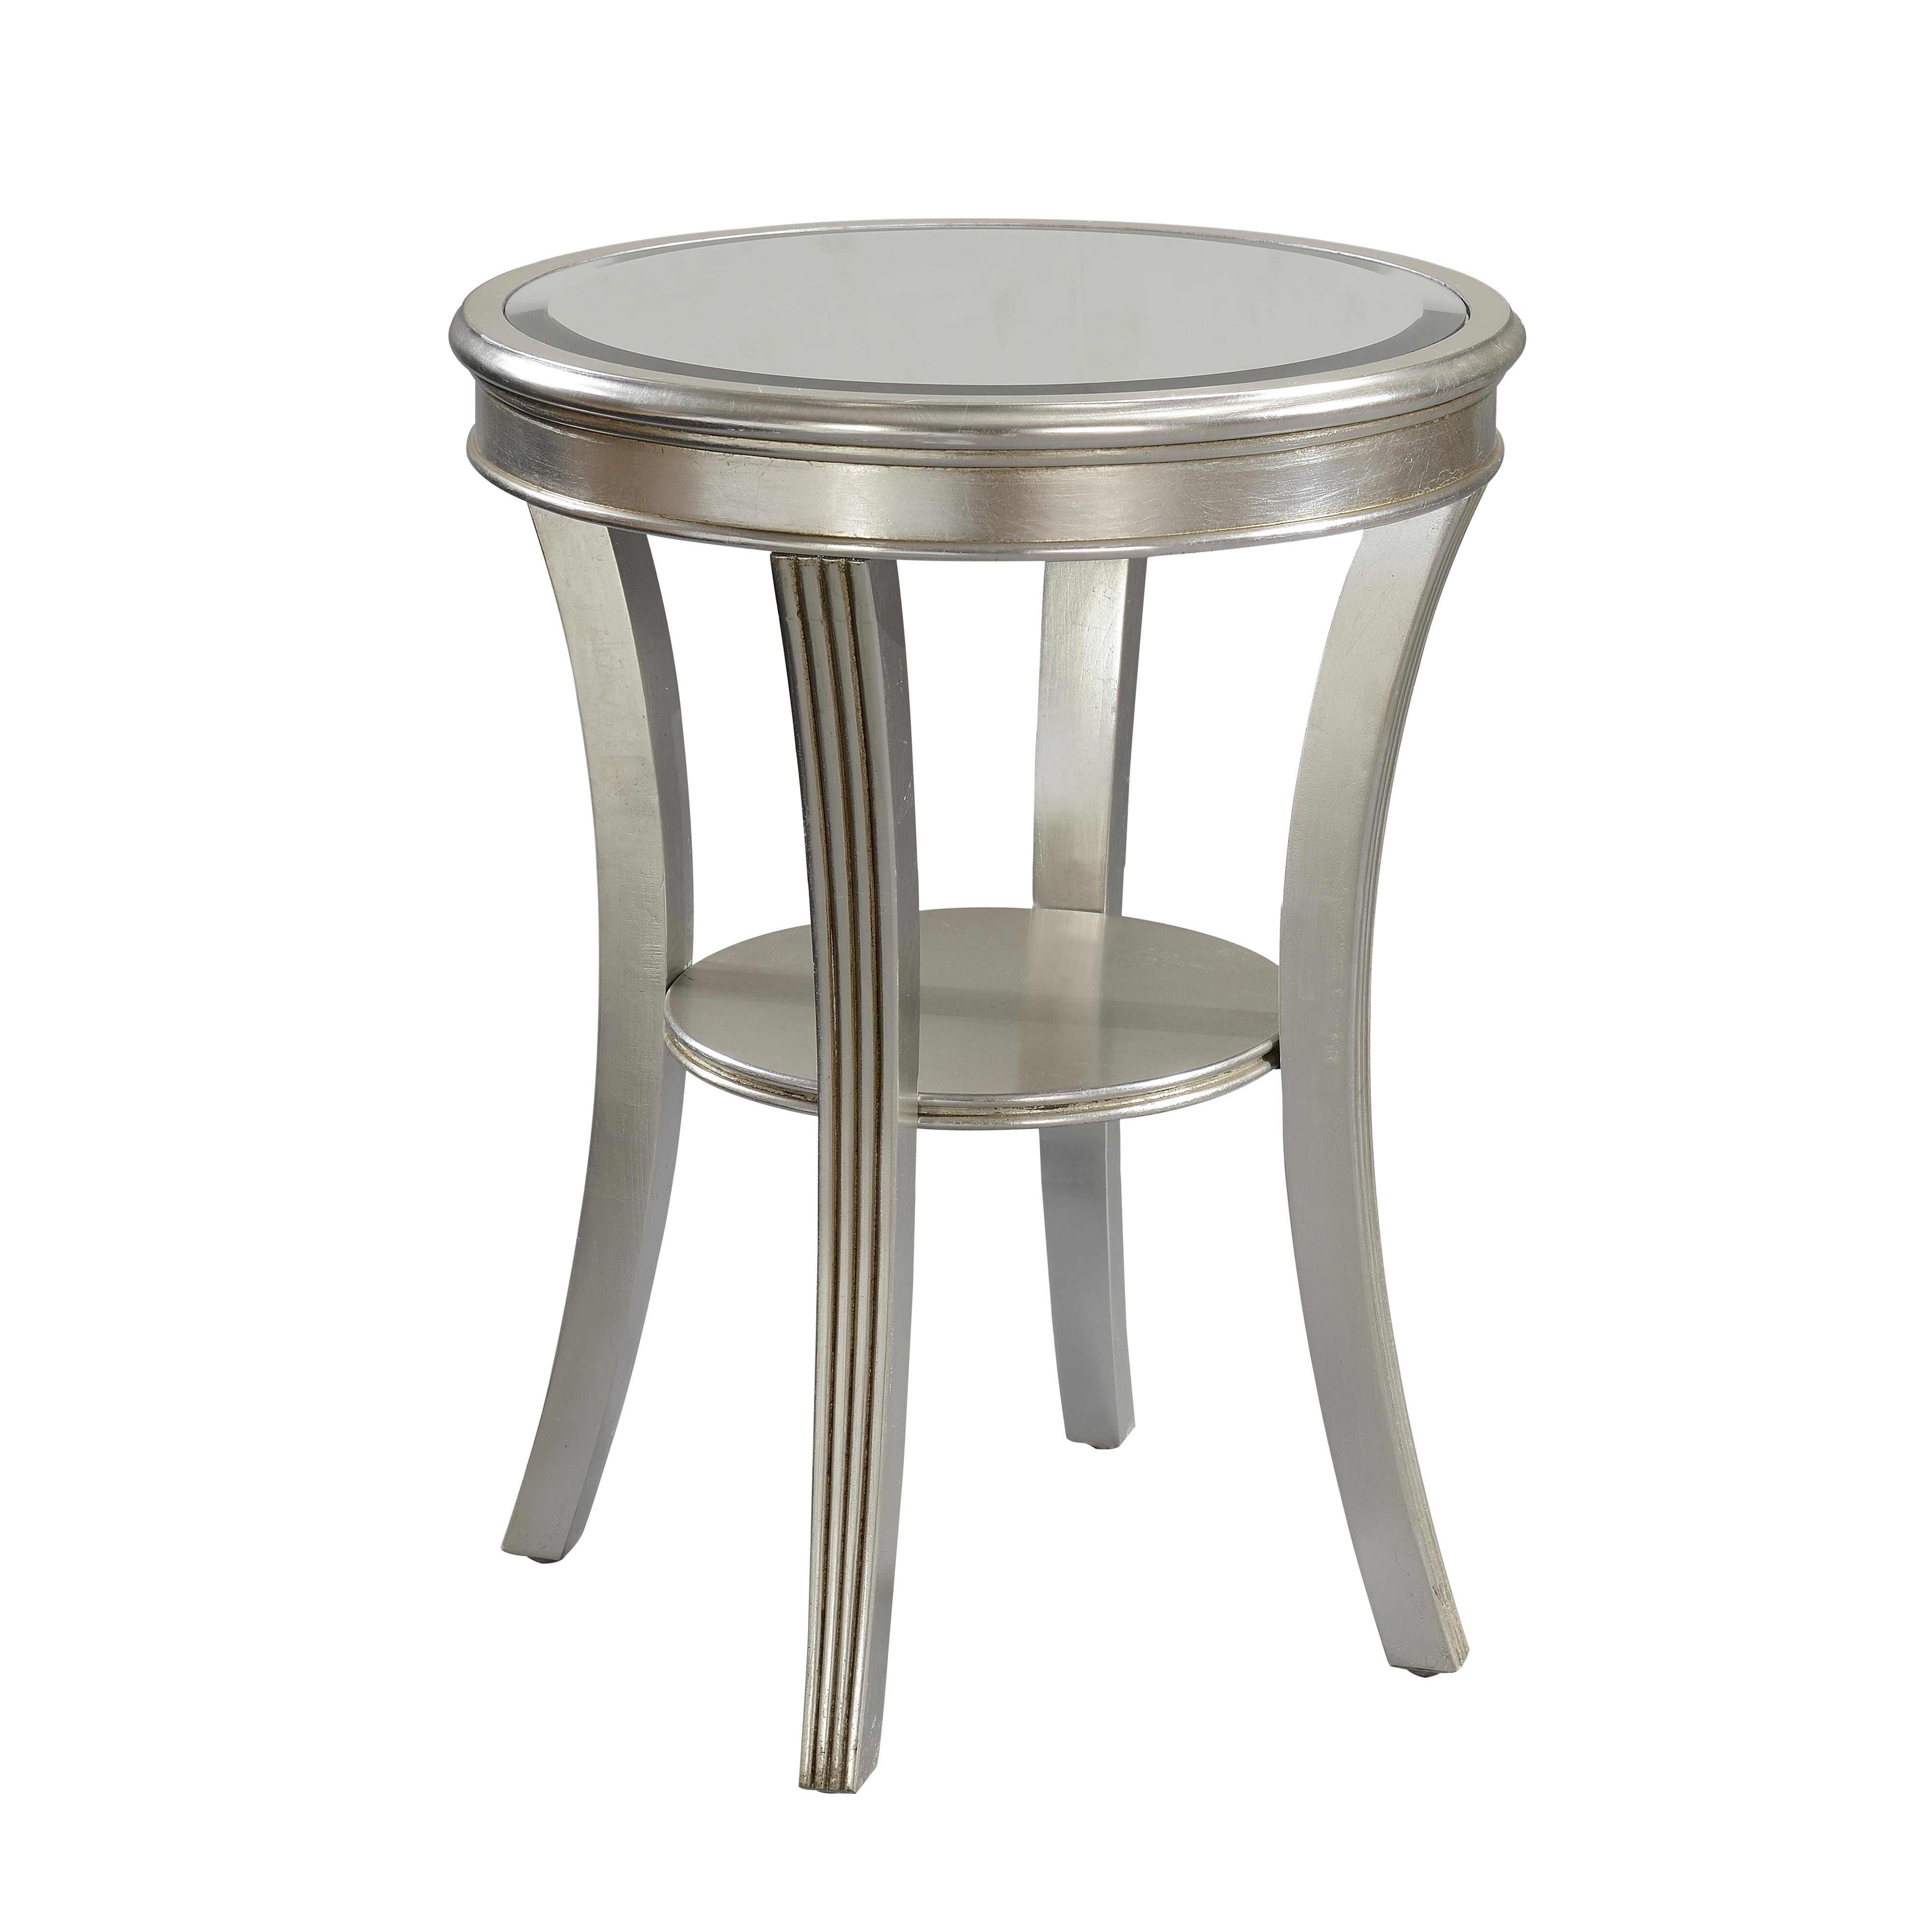 Coast to Coast Accents Accent Table by Coast to Coast Imports at Baer's Furniture